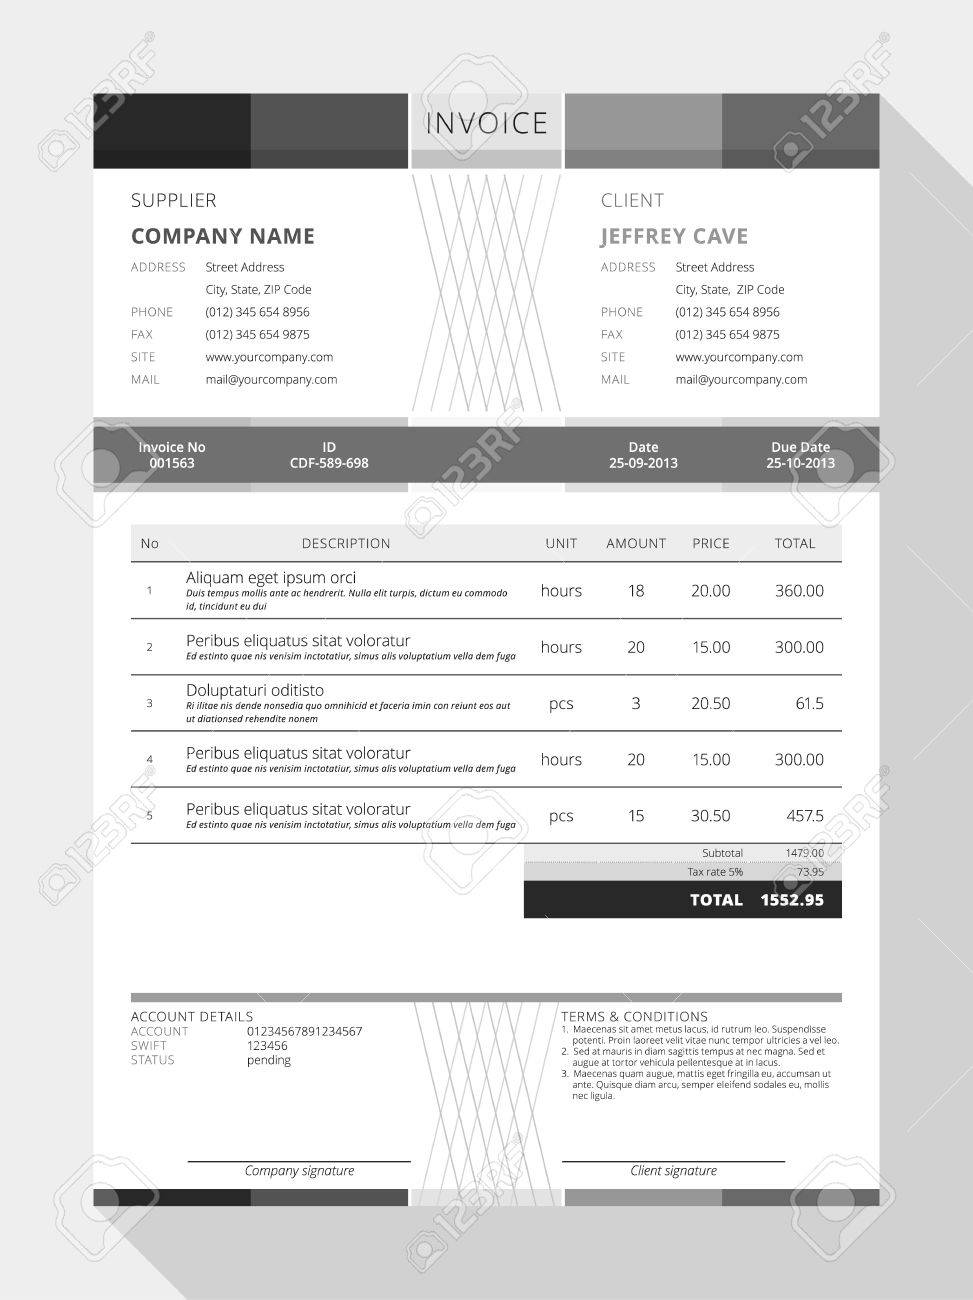 Coolmathgamesus  Inspiring Design An Invoice  Professional Graphic Design Invoice  With Fascinating Vector Customizable Invoice Form Template Design Vector   Design An Invoice With Cute Charitable Receipts Also Goods Receipted In Addition Lasagne Receipt And Receiving Receipt As Well As House Rent Receipt Pdf Additionally Kiosk Receipt Printer From Happytomco With Coolmathgamesus  Fascinating Design An Invoice  Professional Graphic Design Invoice  With Cute Vector Customizable Invoice Form Template Design Vector   Design An Invoice And Inspiring Charitable Receipts Also Goods Receipted In Addition Lasagne Receipt From Happytomco